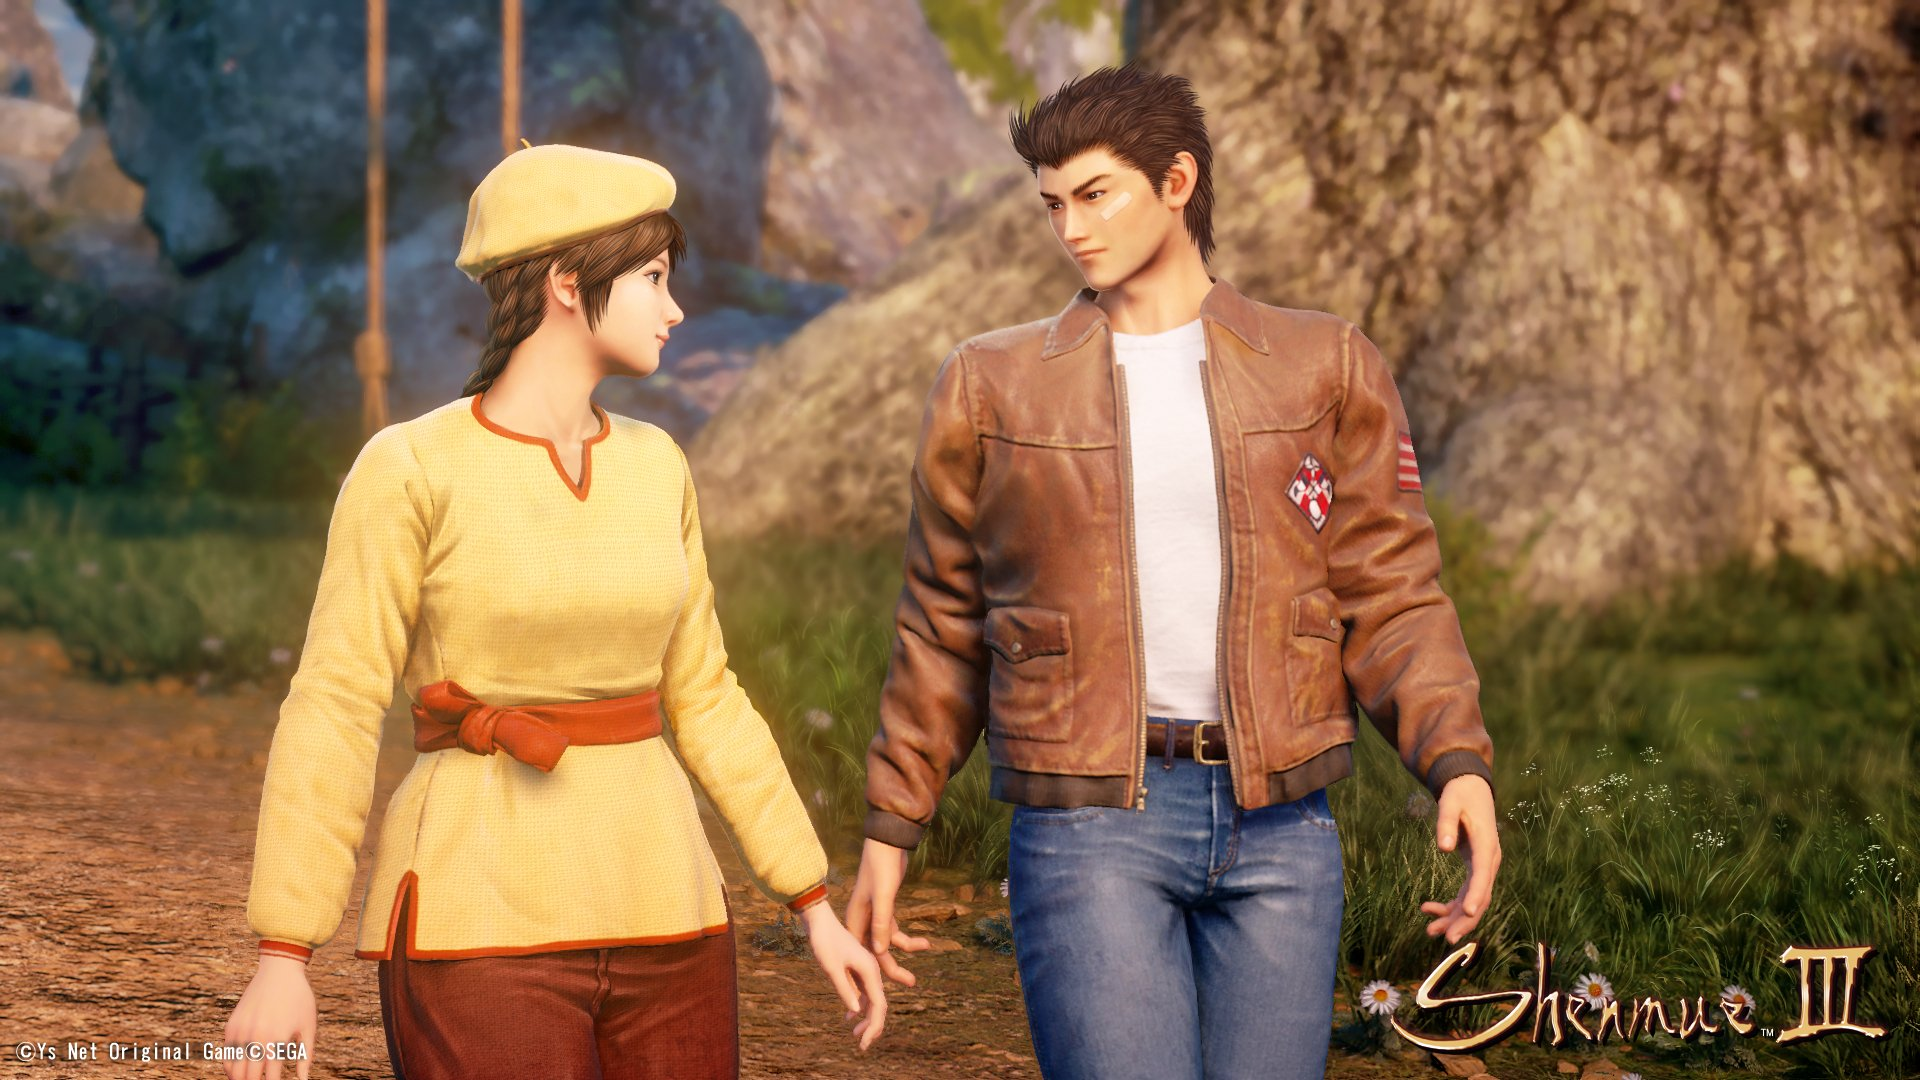 Shenmue III battle system